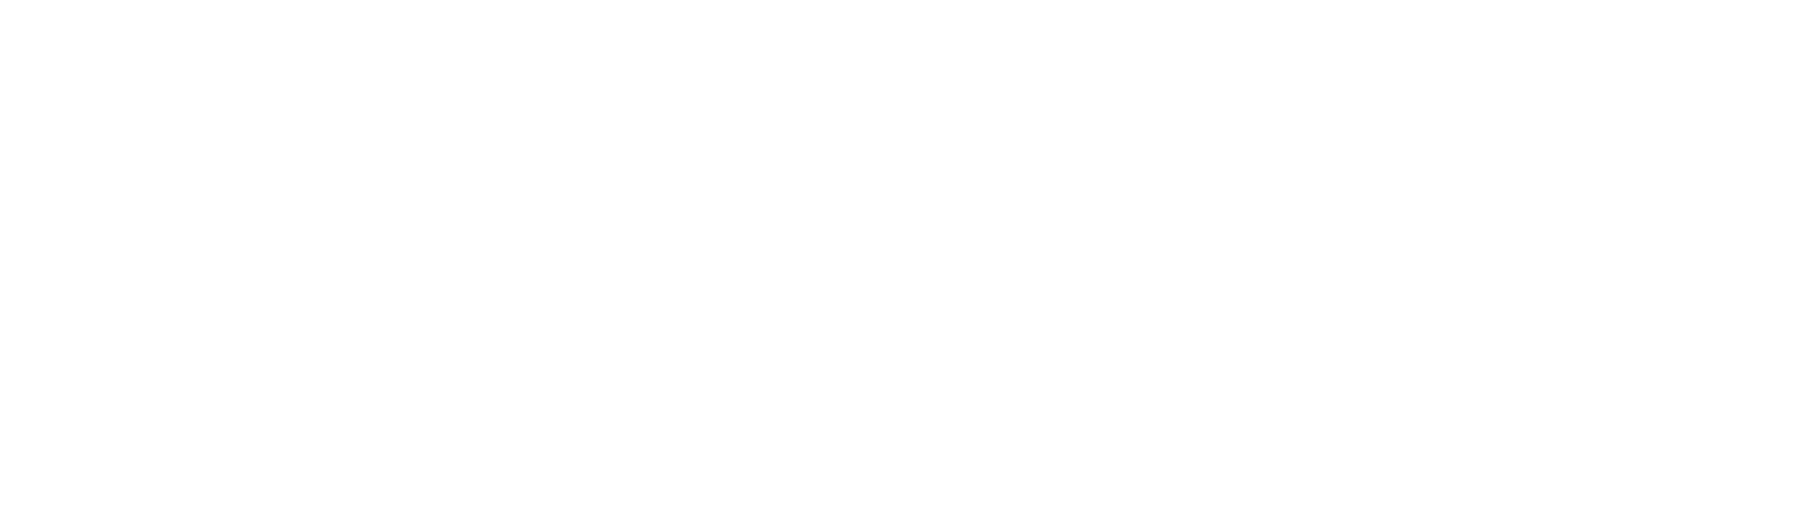 Creating Syetem Value as Our Common Future.私たちの未来とともにあり続けるシステムを創り出します